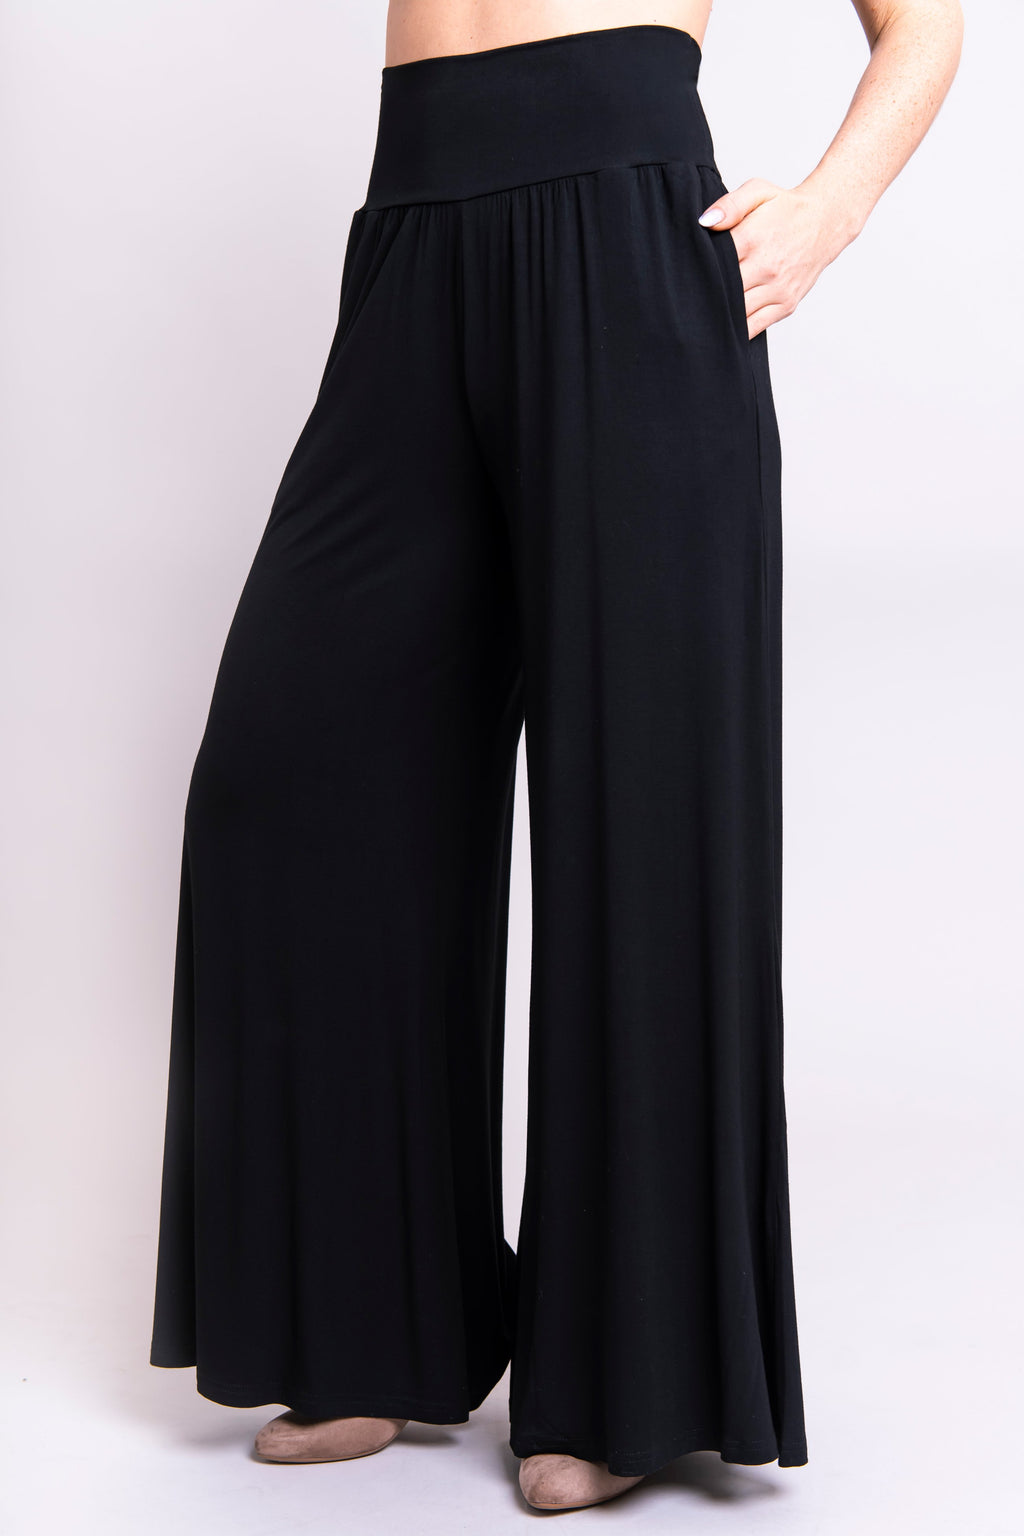 Palazzo Pant, Black - Blue Sky Clothing Co